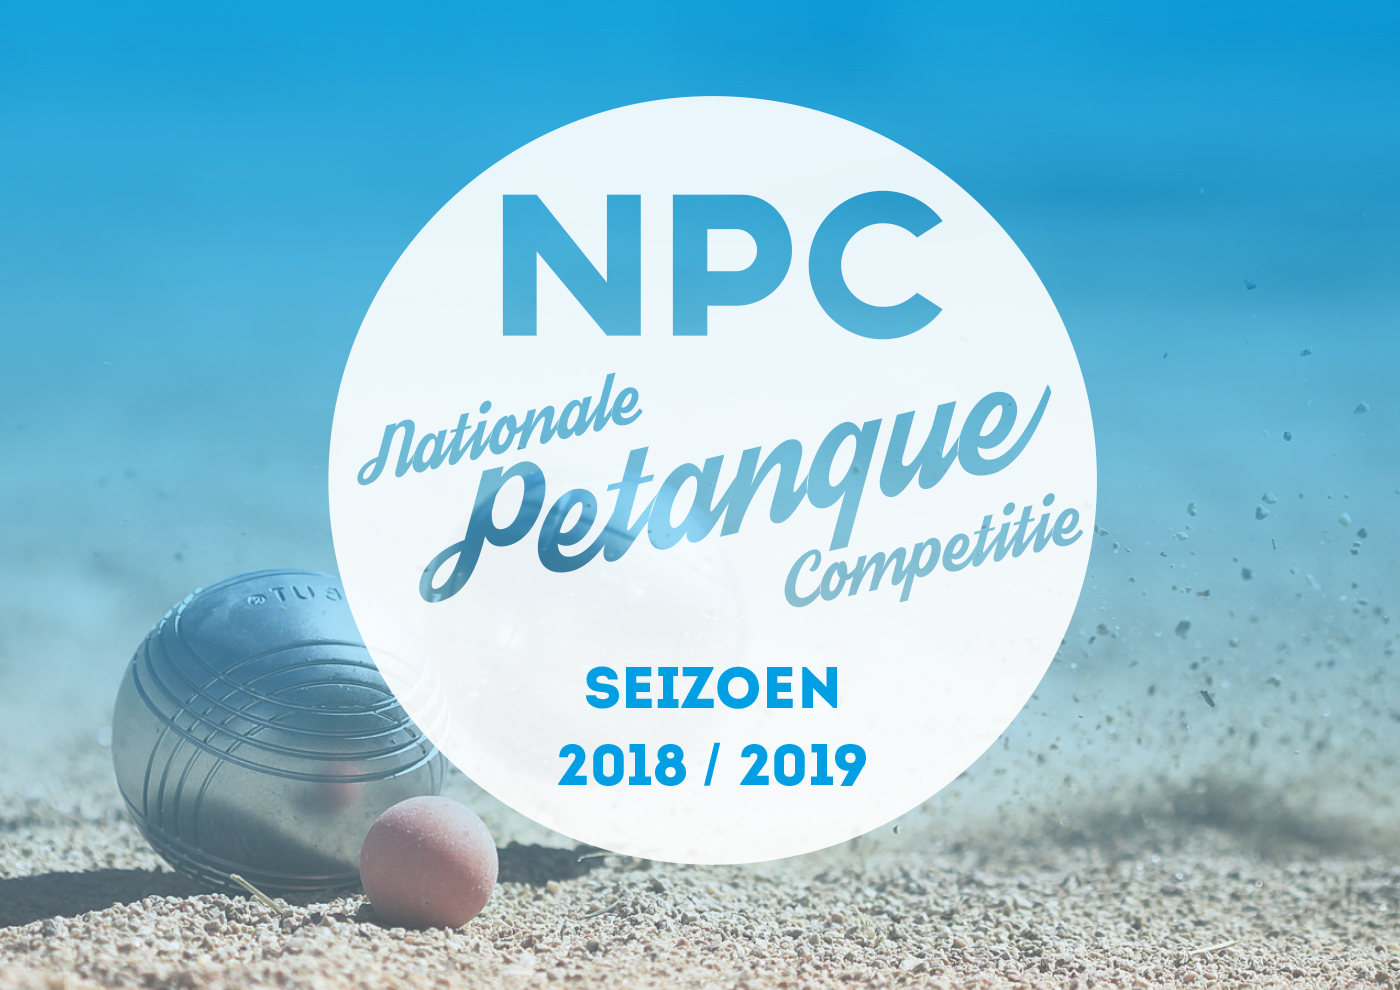 Nationale Petanque Competitie Seizoen 2018-2019